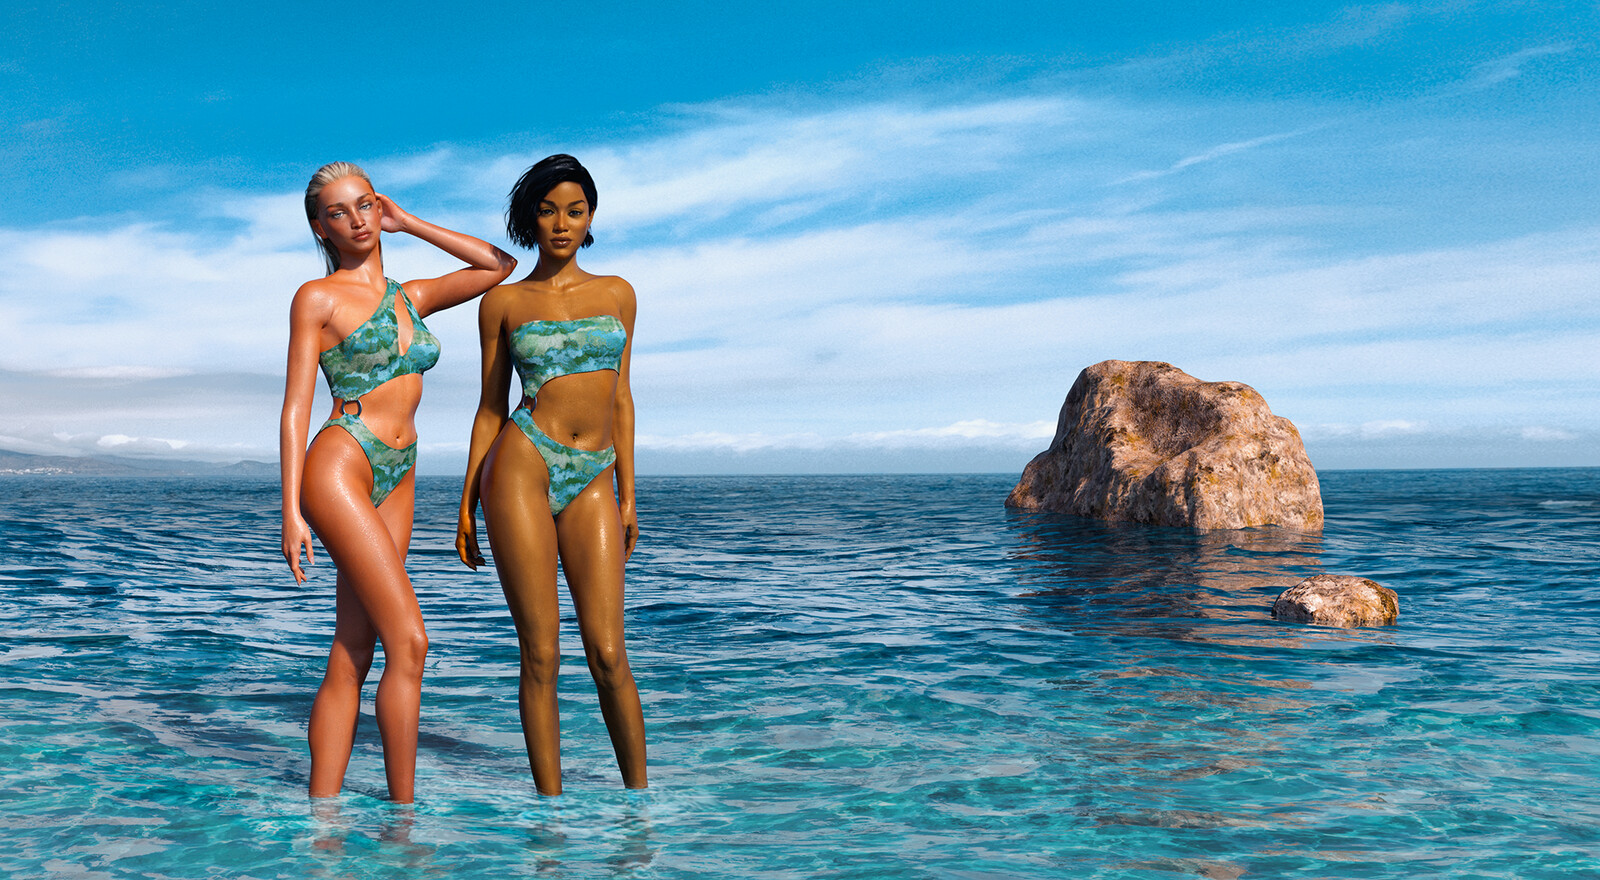 elise x elisia SS2020 Swimsuit Collection Website Artwork